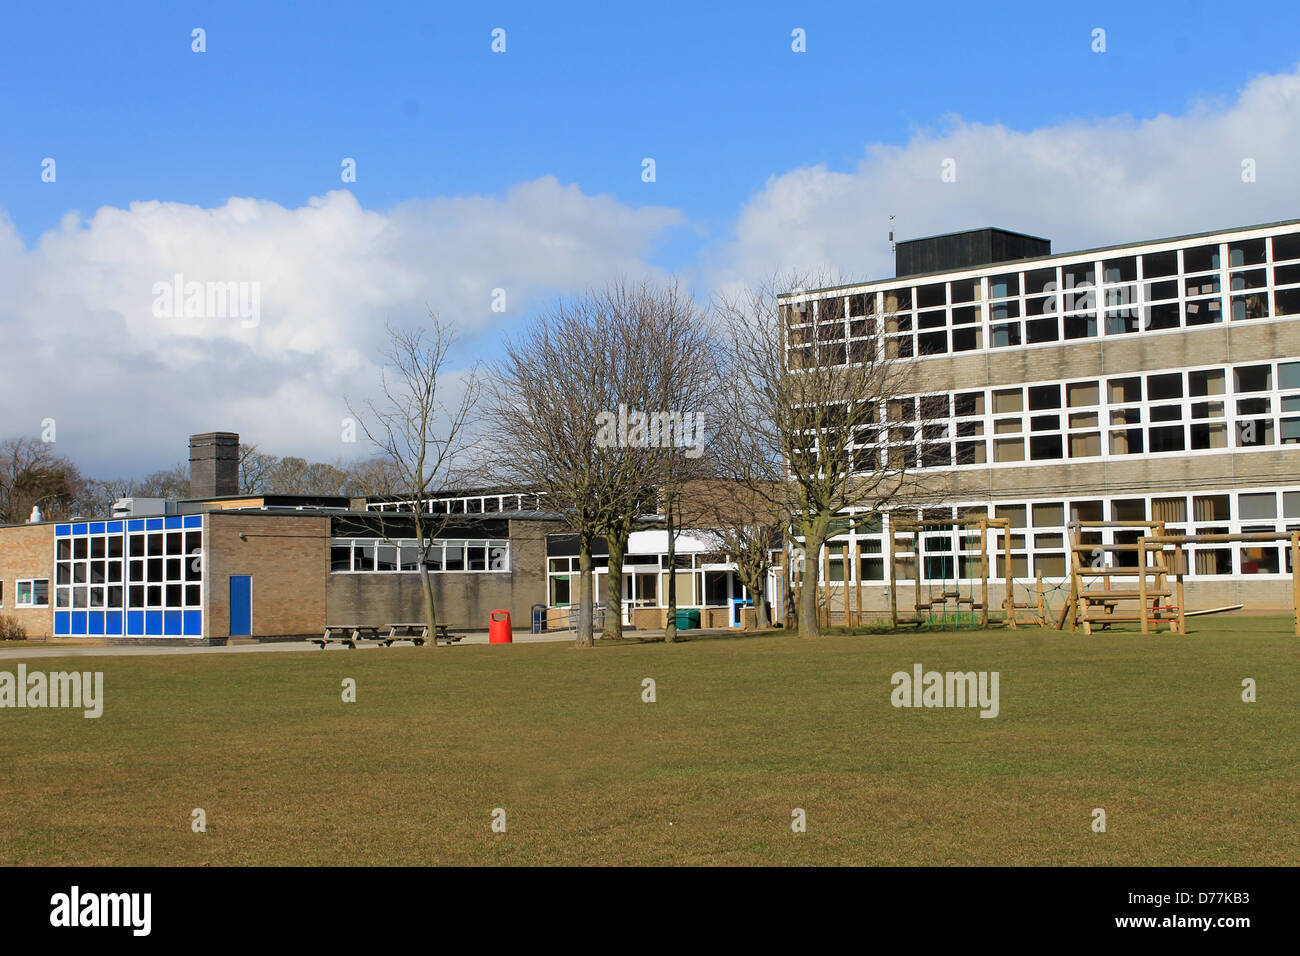 Exterior of modern school building with playing field in foreground. - Stock Image